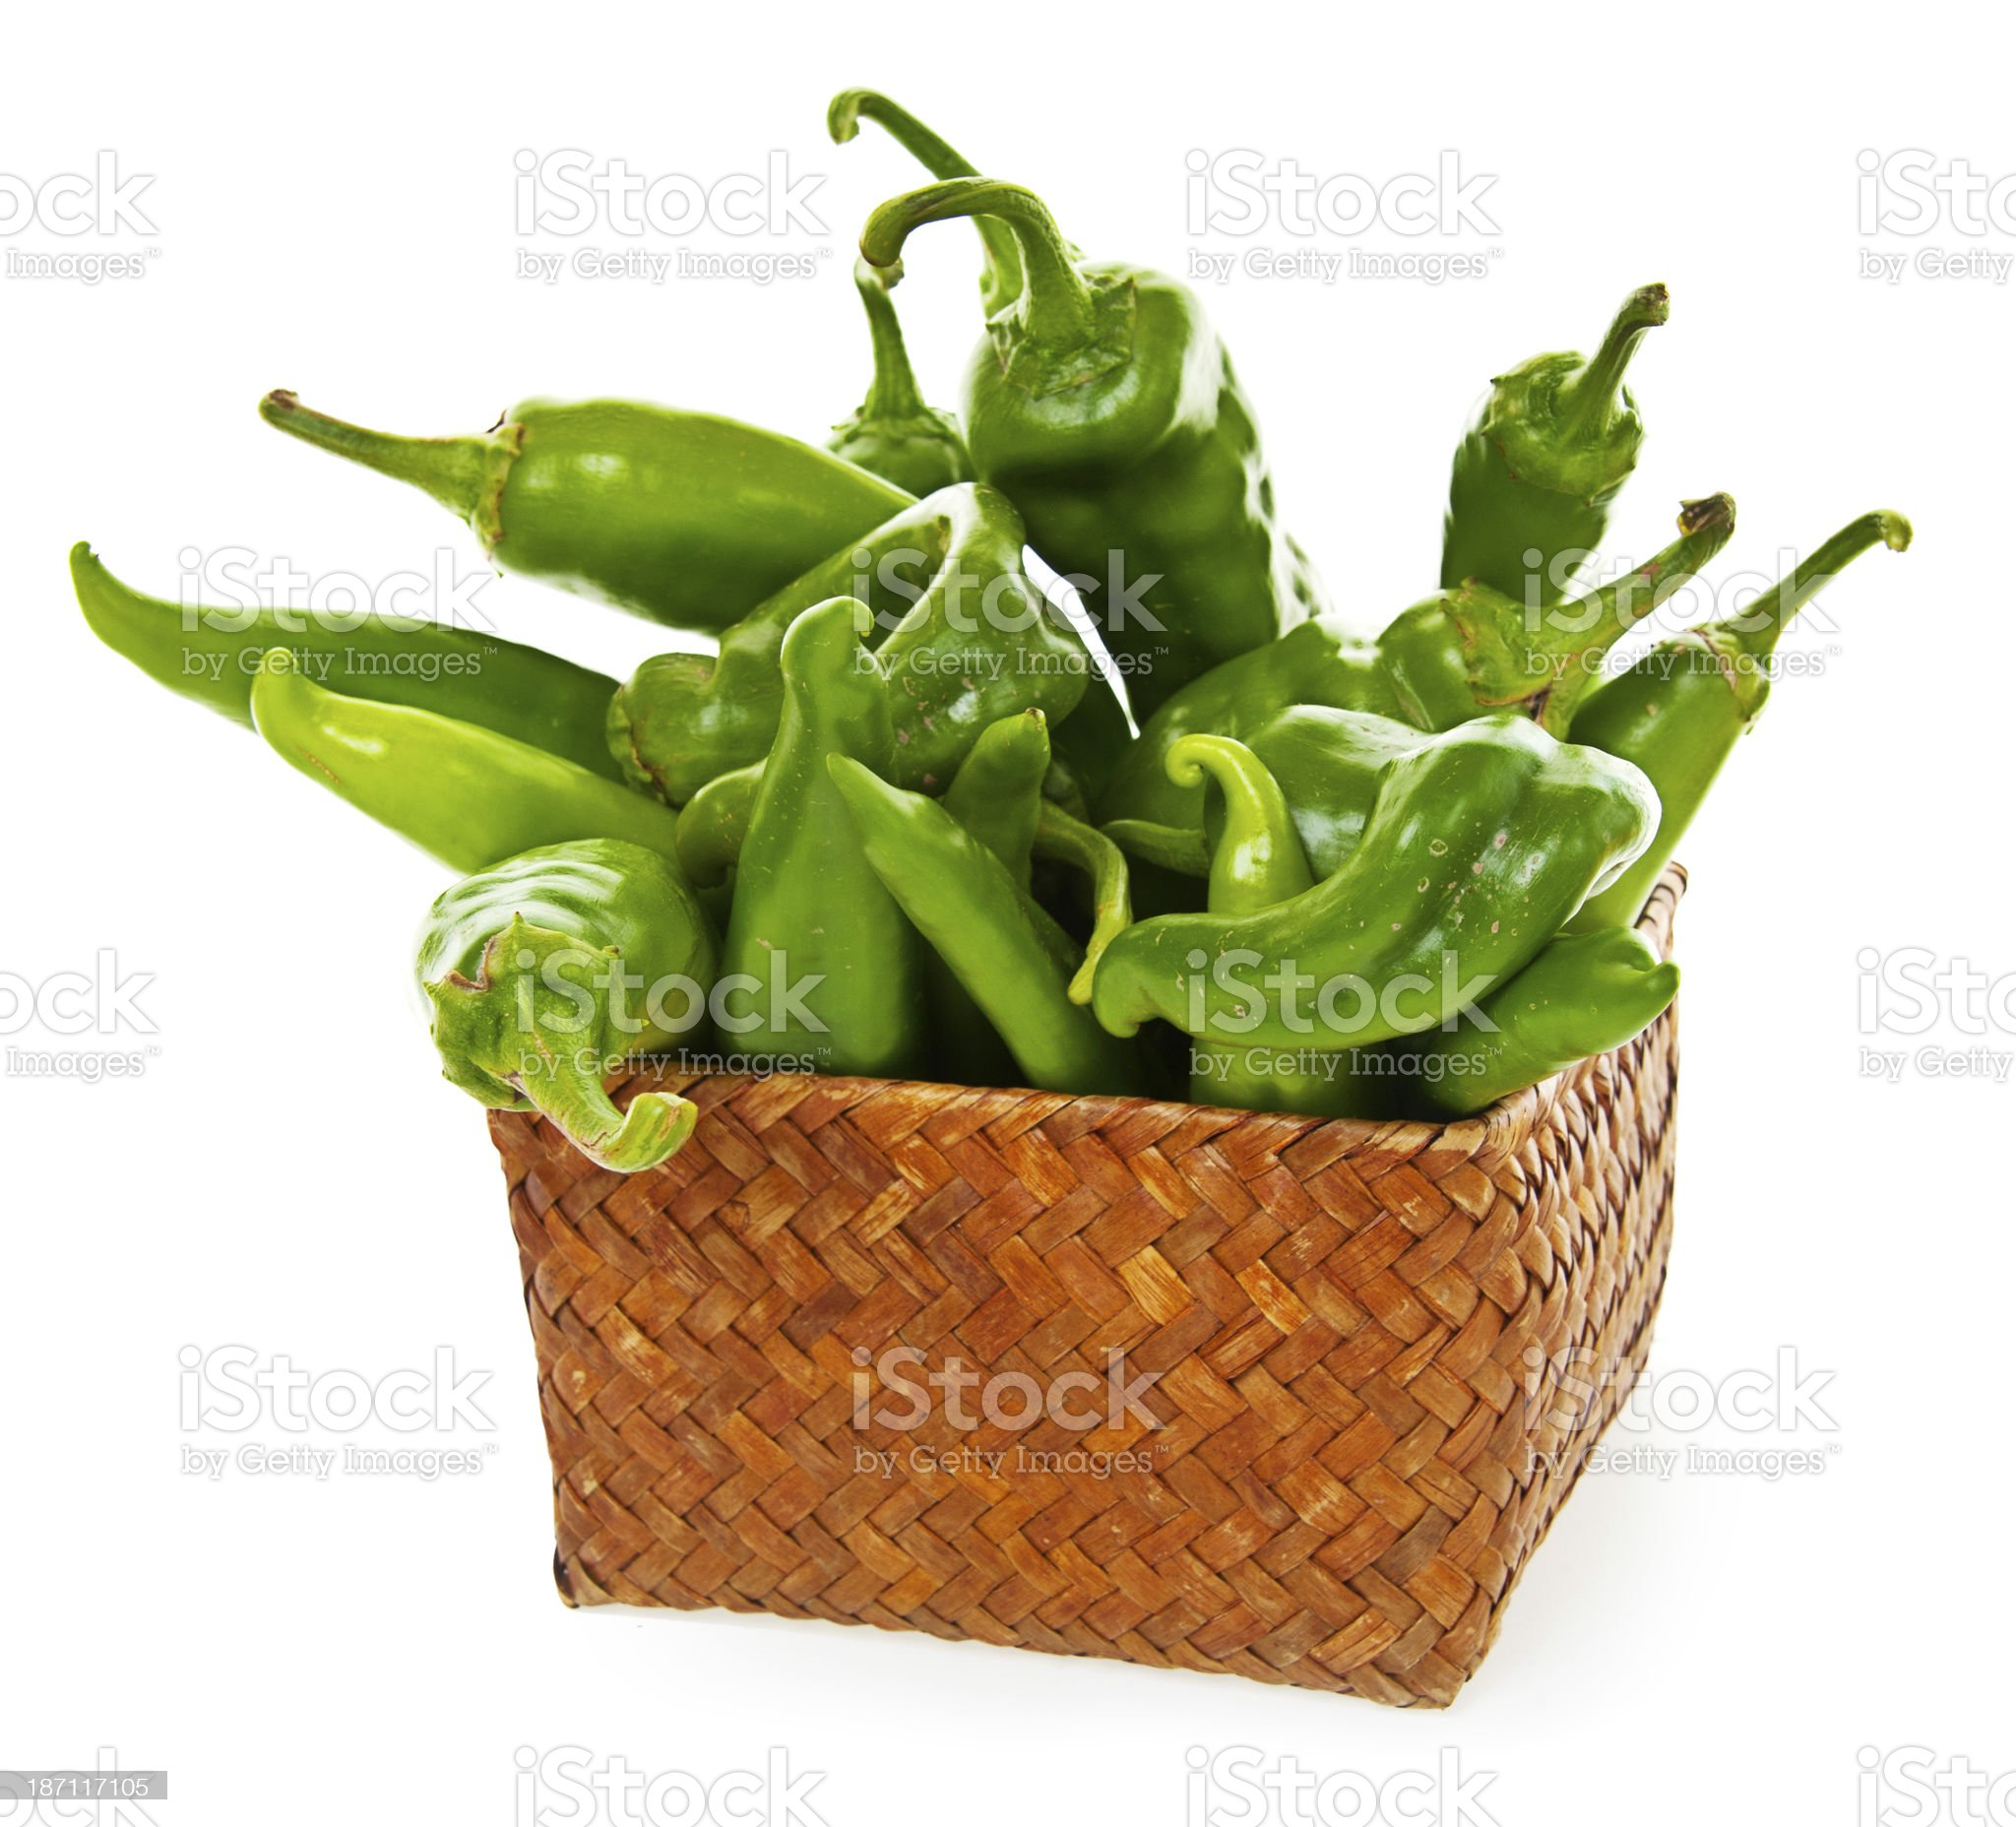 Hot Green Chili Peppers royalty-free stock photo